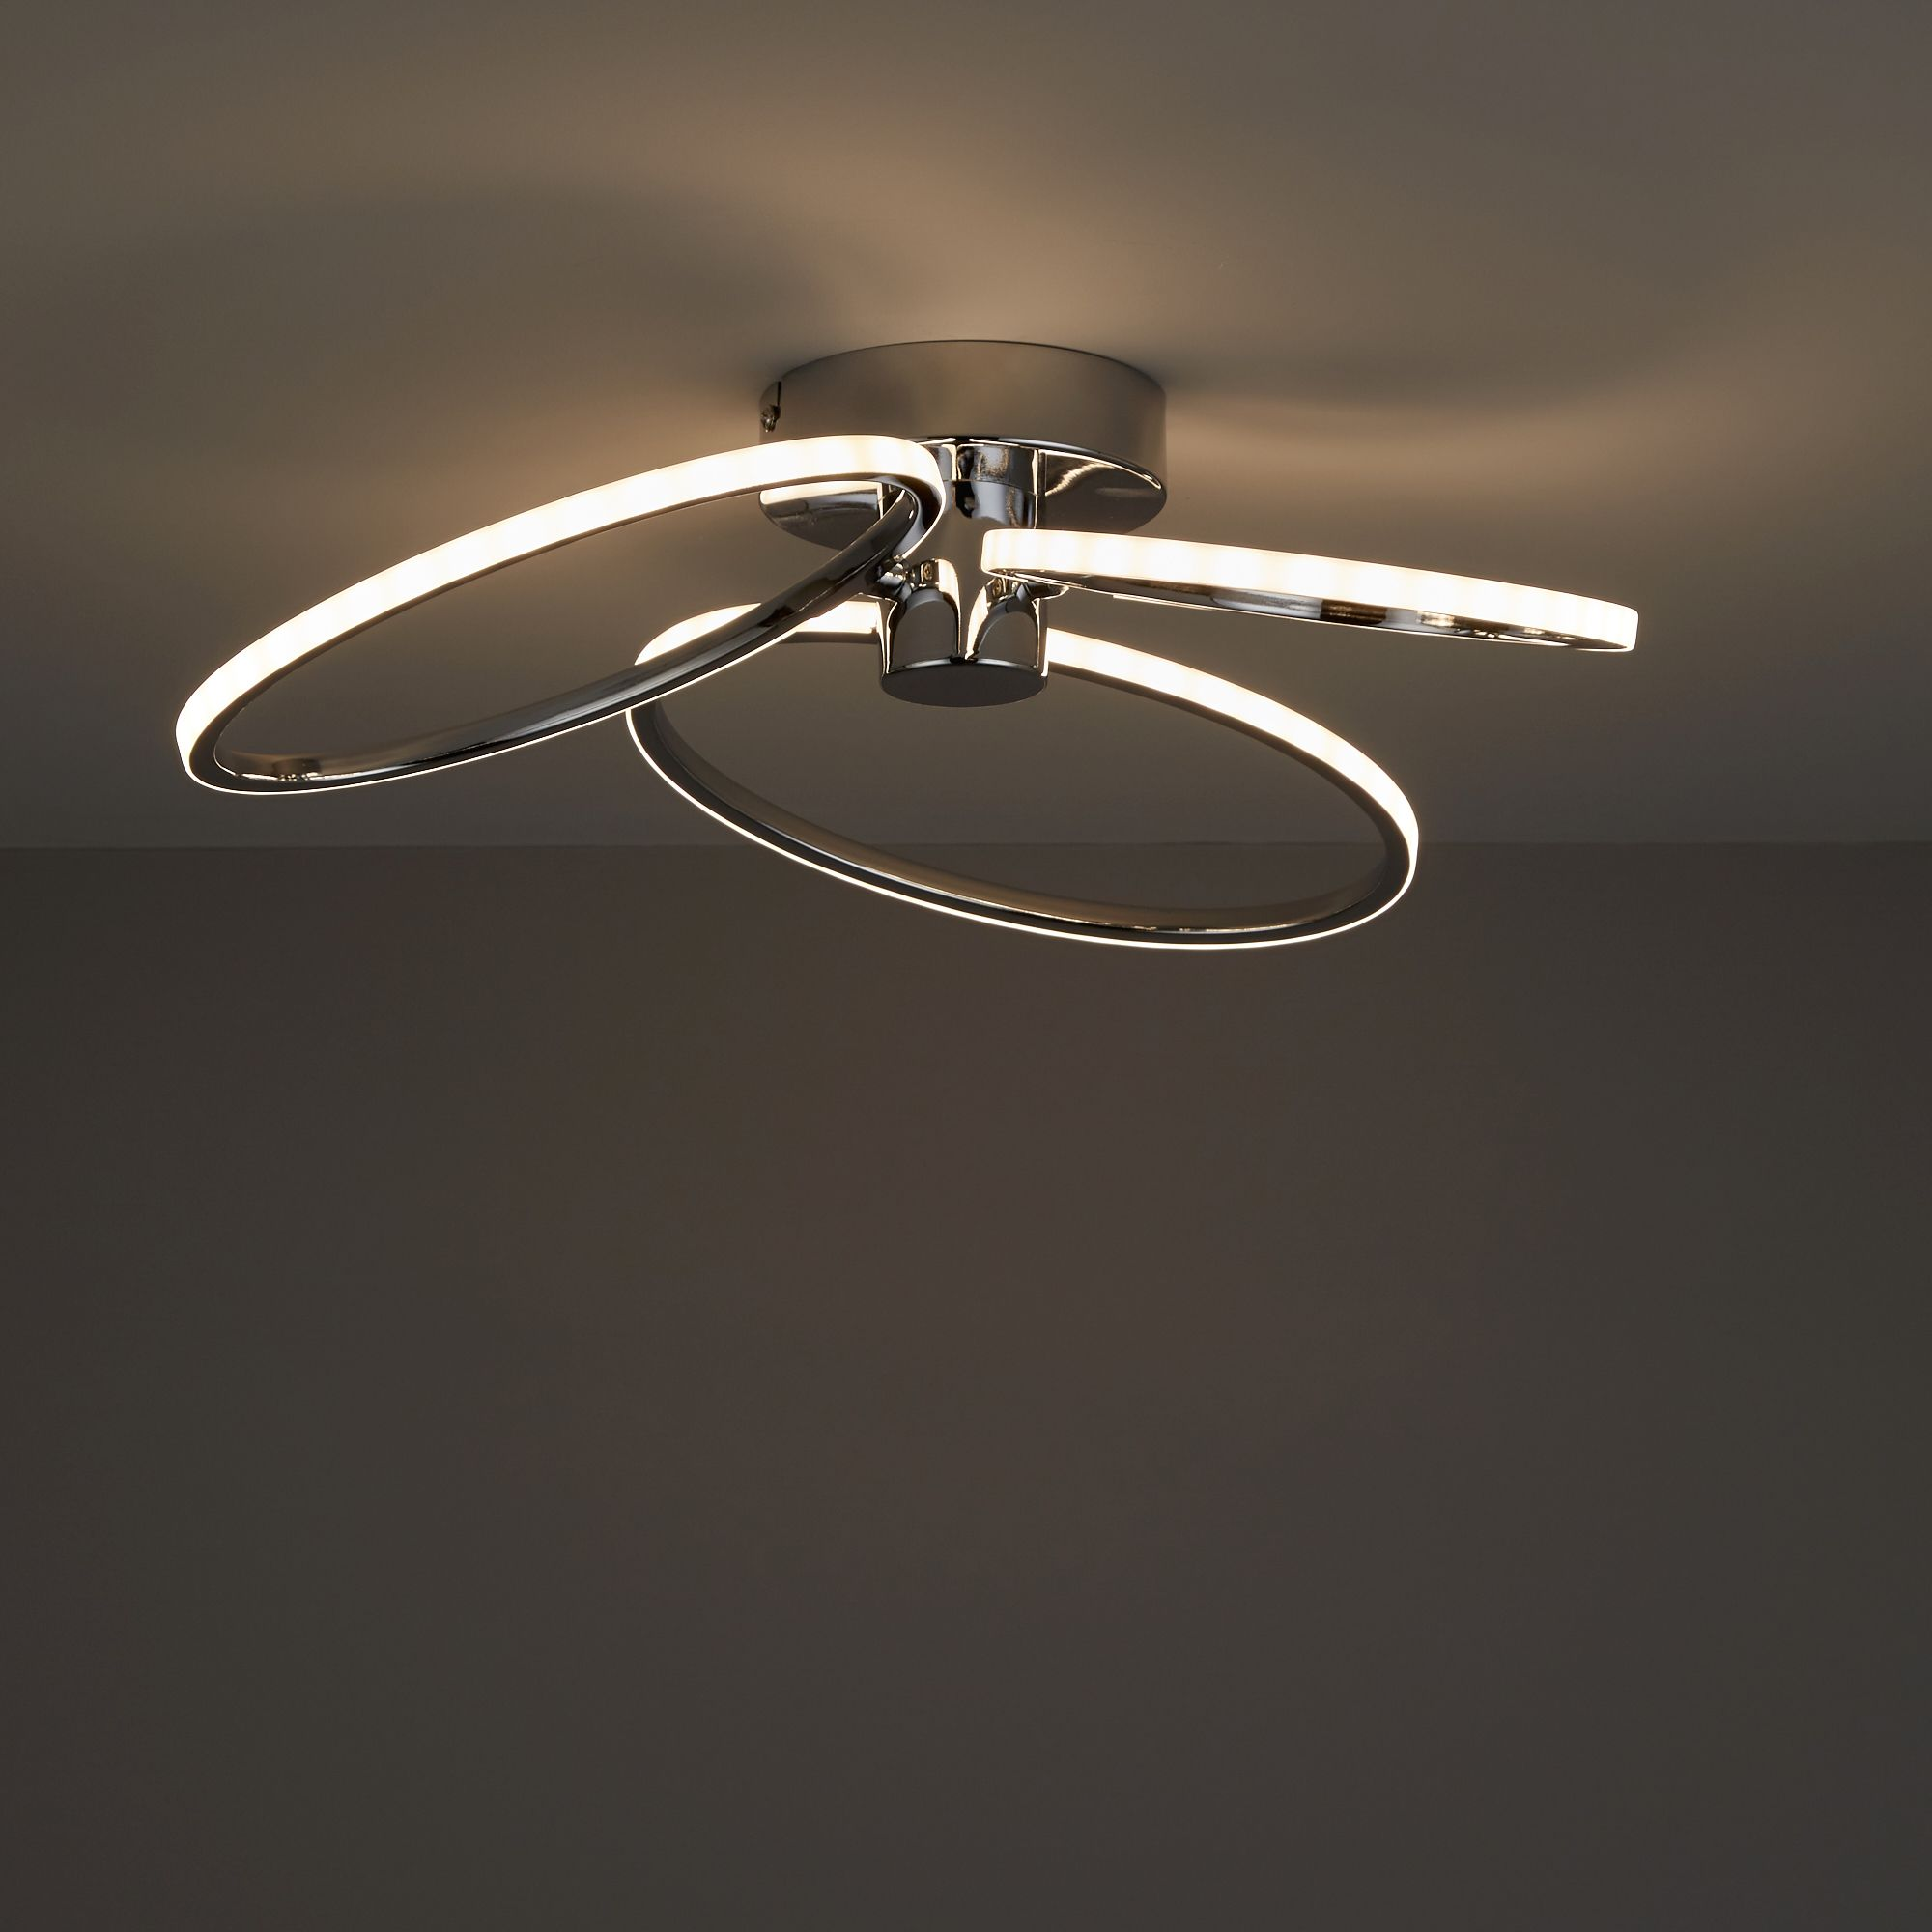 Diy at bq jago led chrome effect 3 lamp ceiling light mozeypictures Gallery